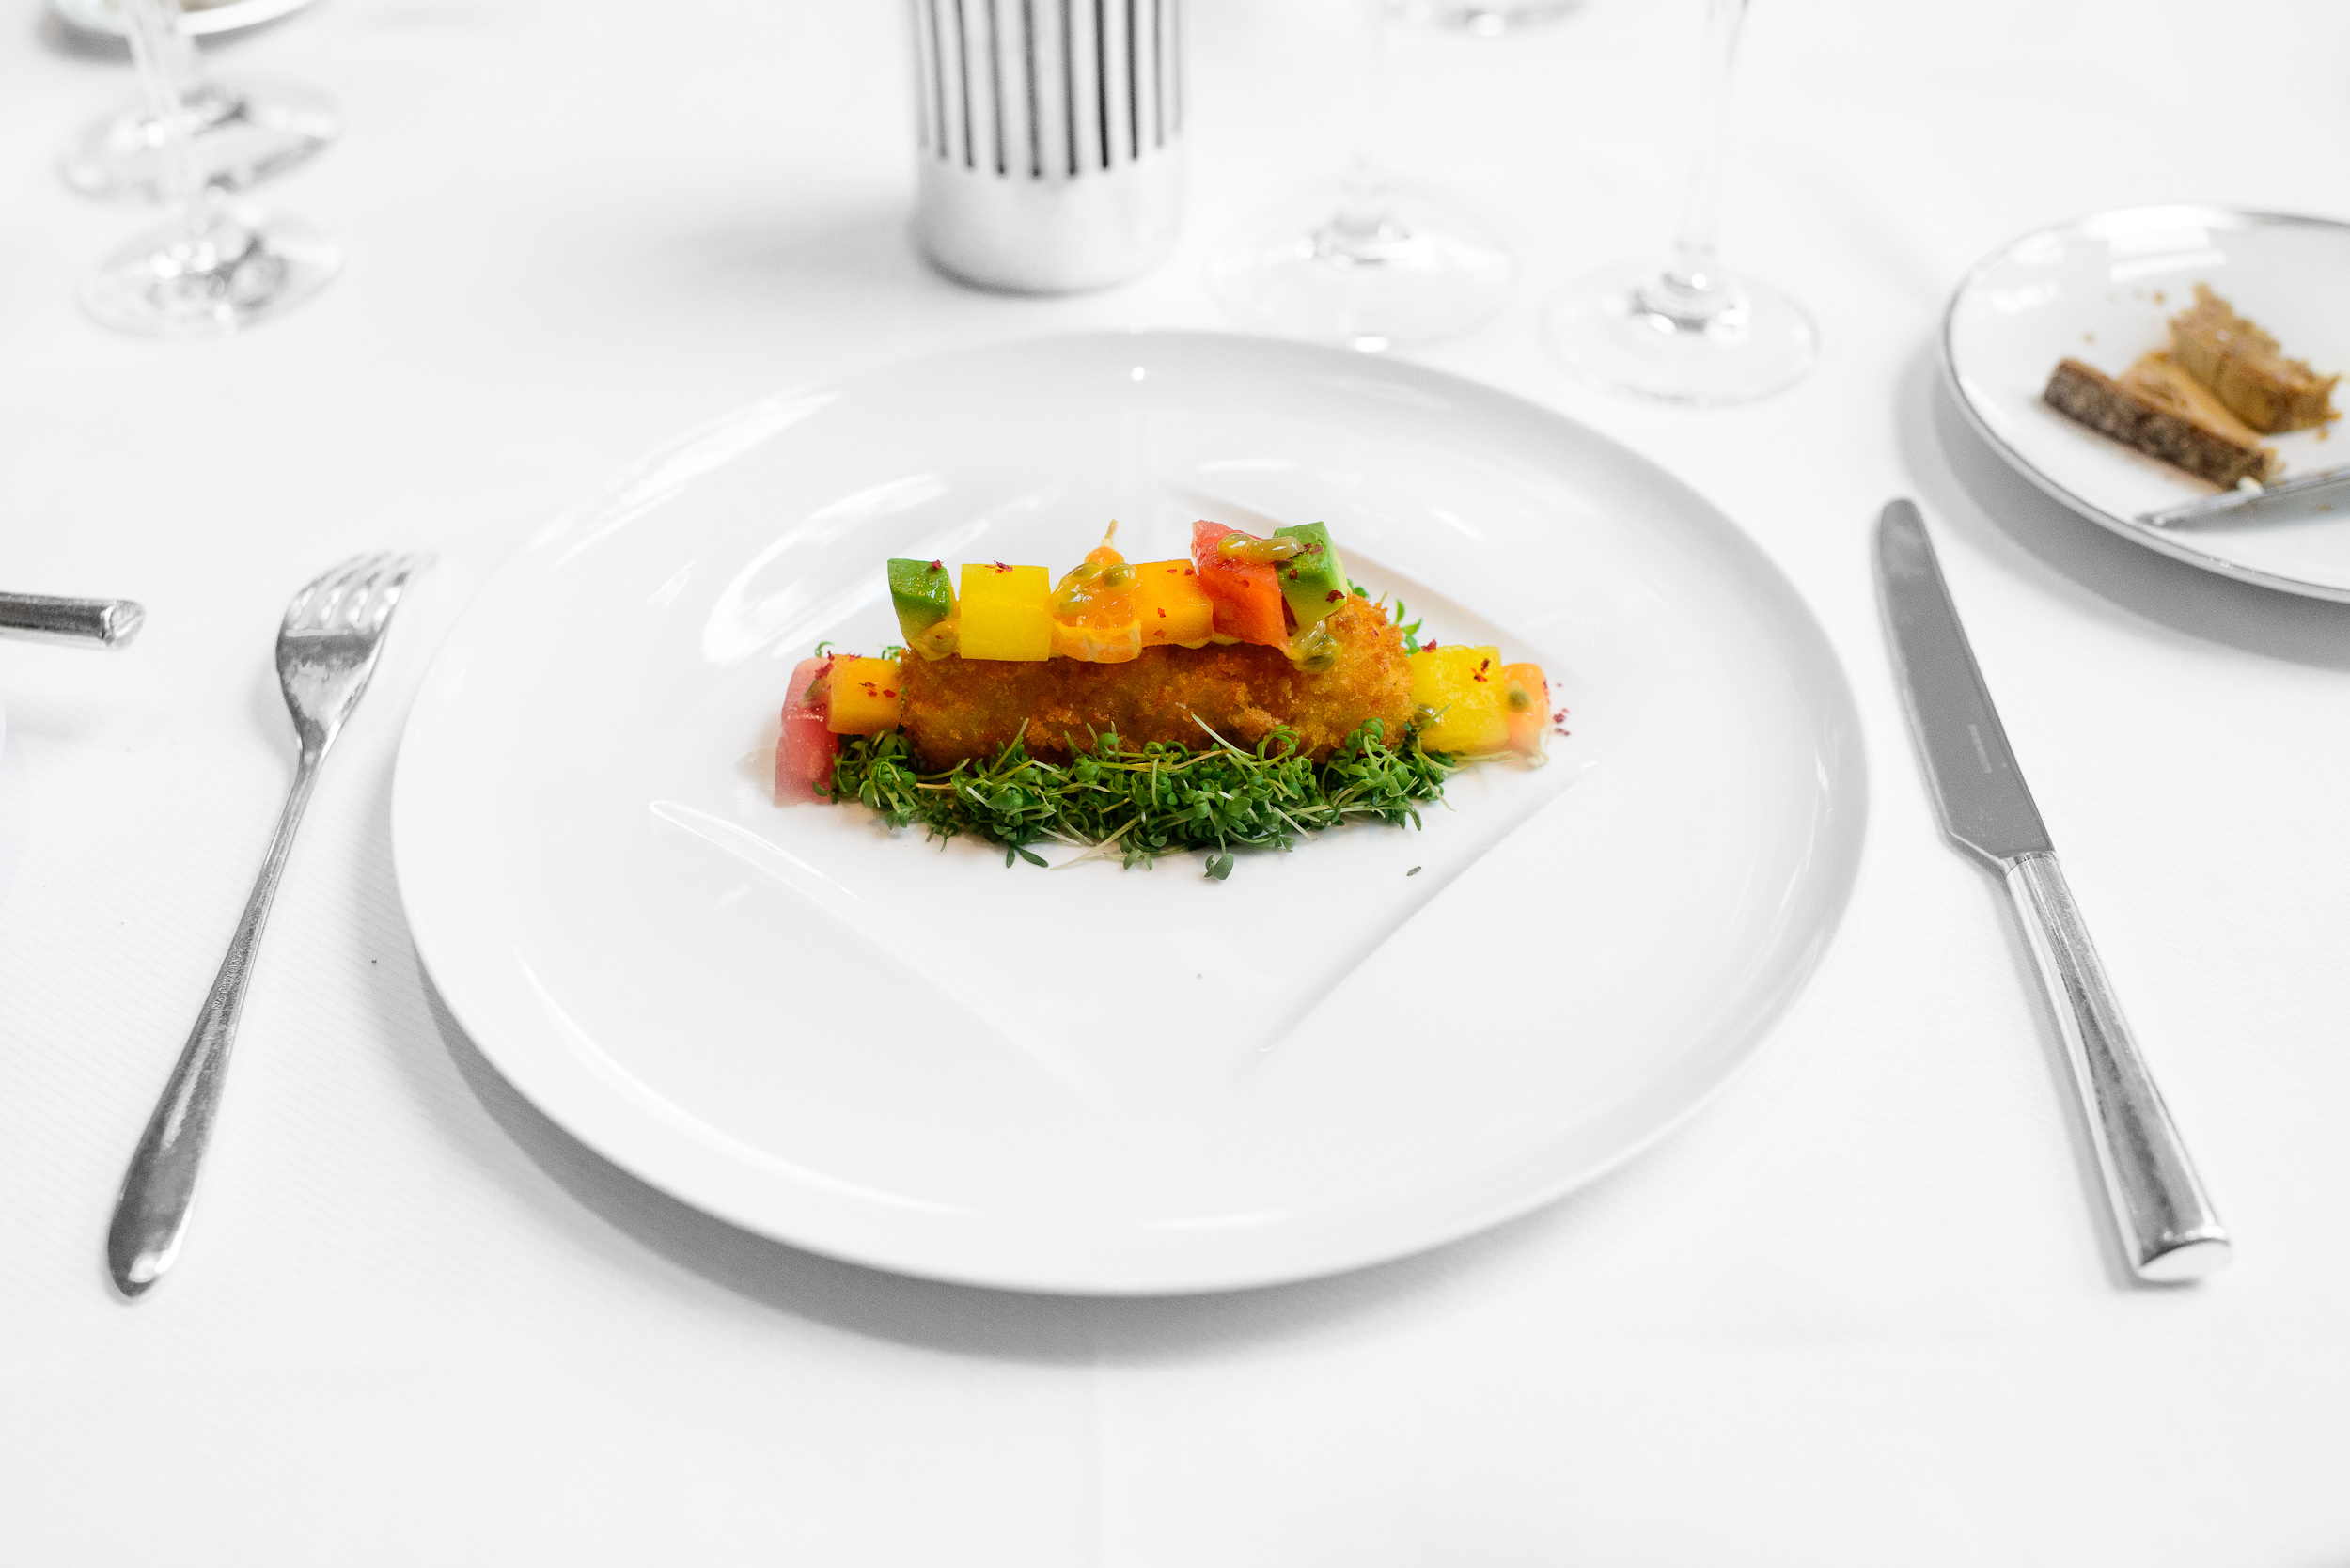 Crispy crab, pink peppercorn mustard, and exotic fruits